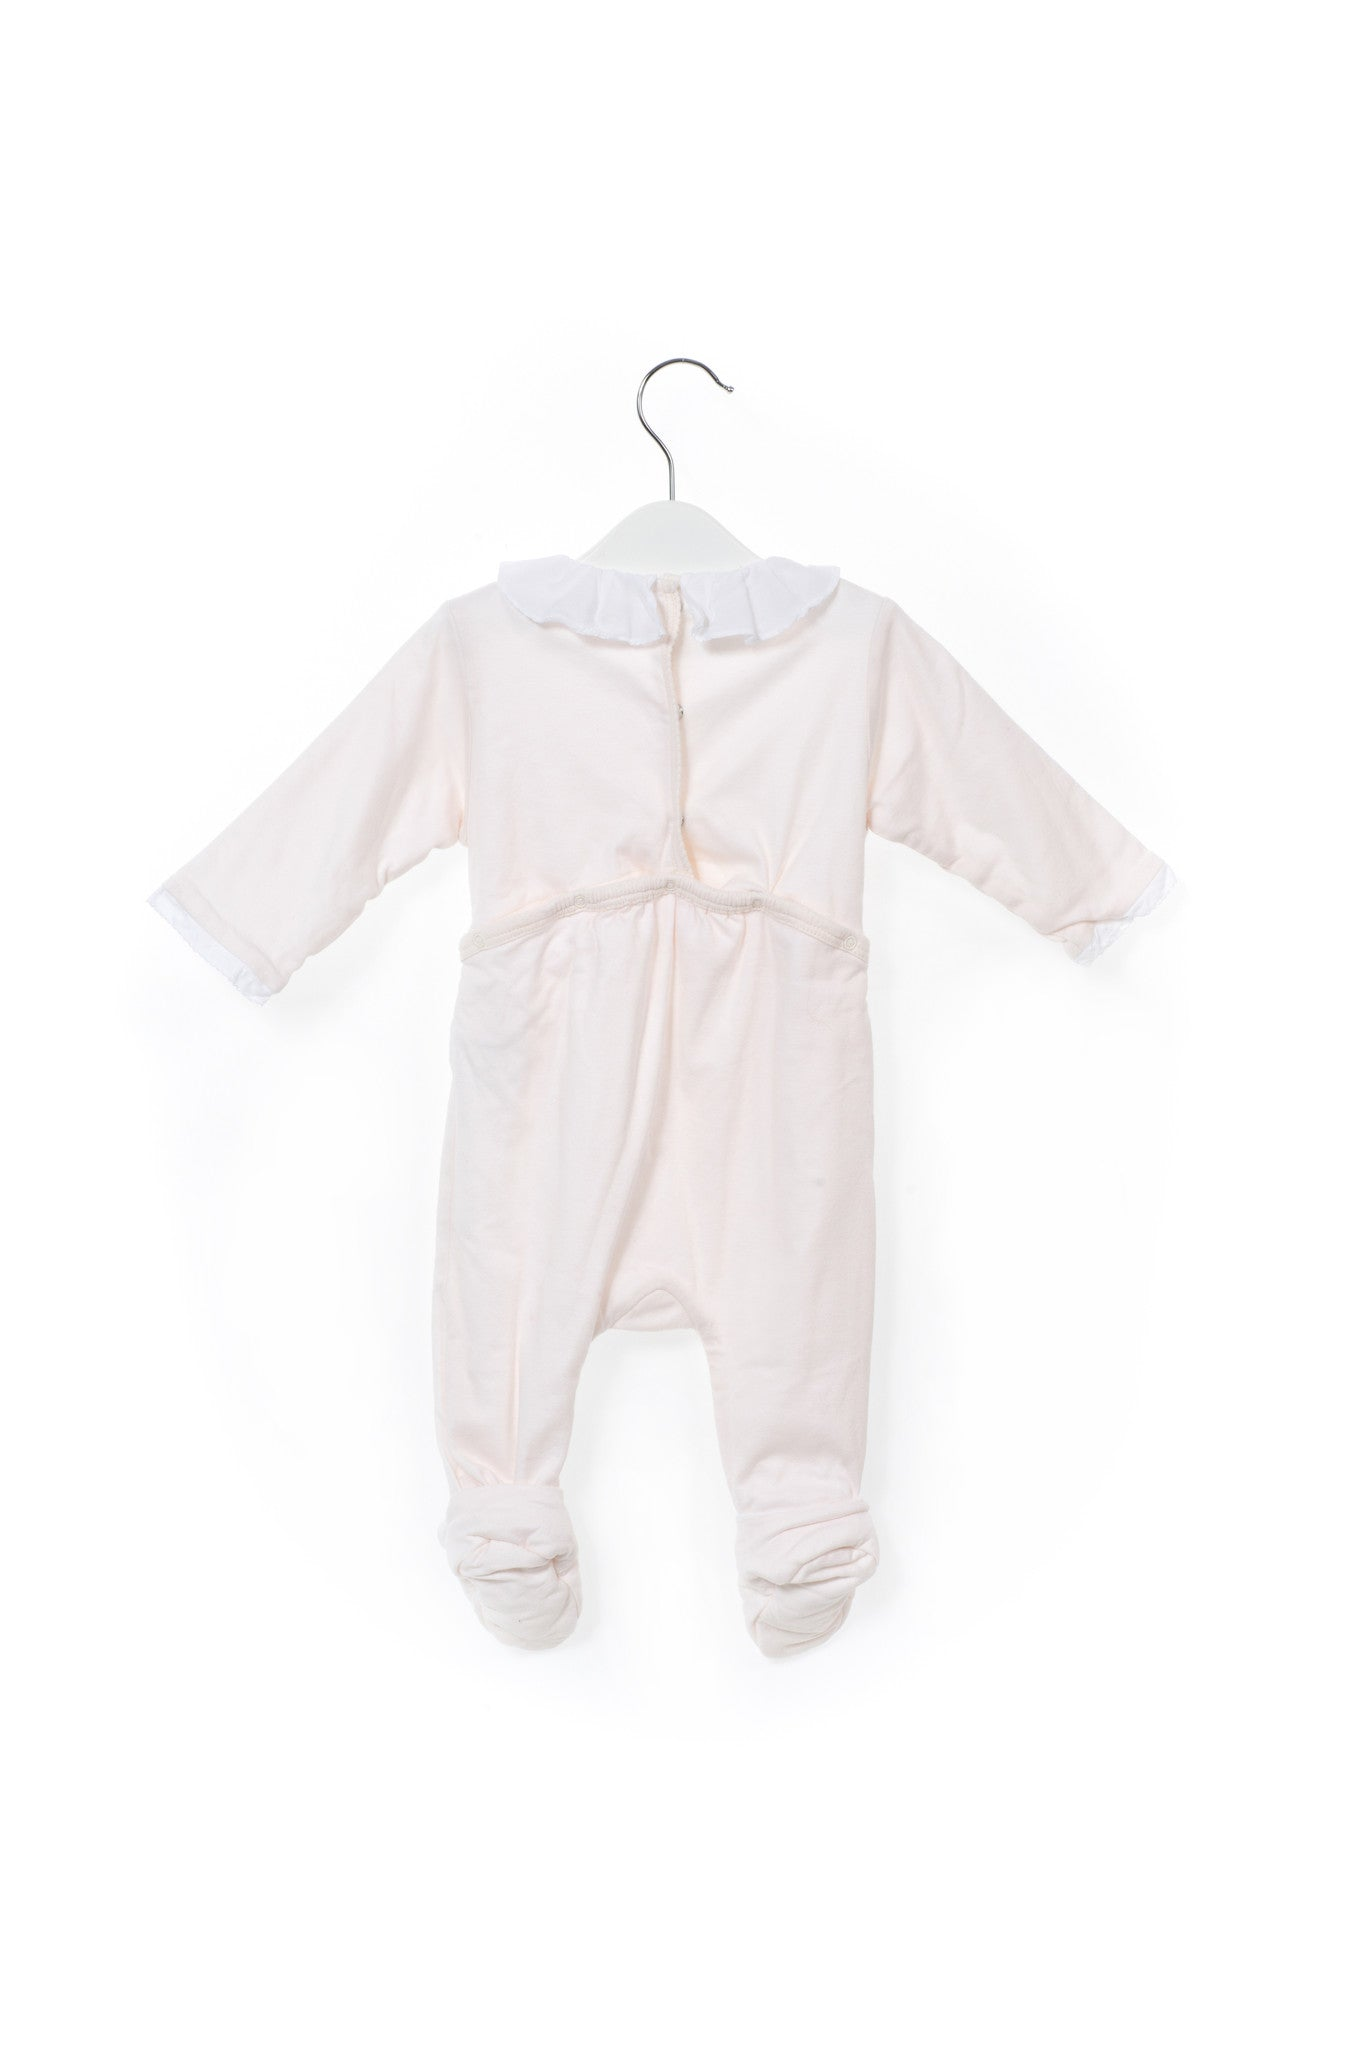 10001133 Chloe Baby~Jumpsuit 3-6M at Retykle